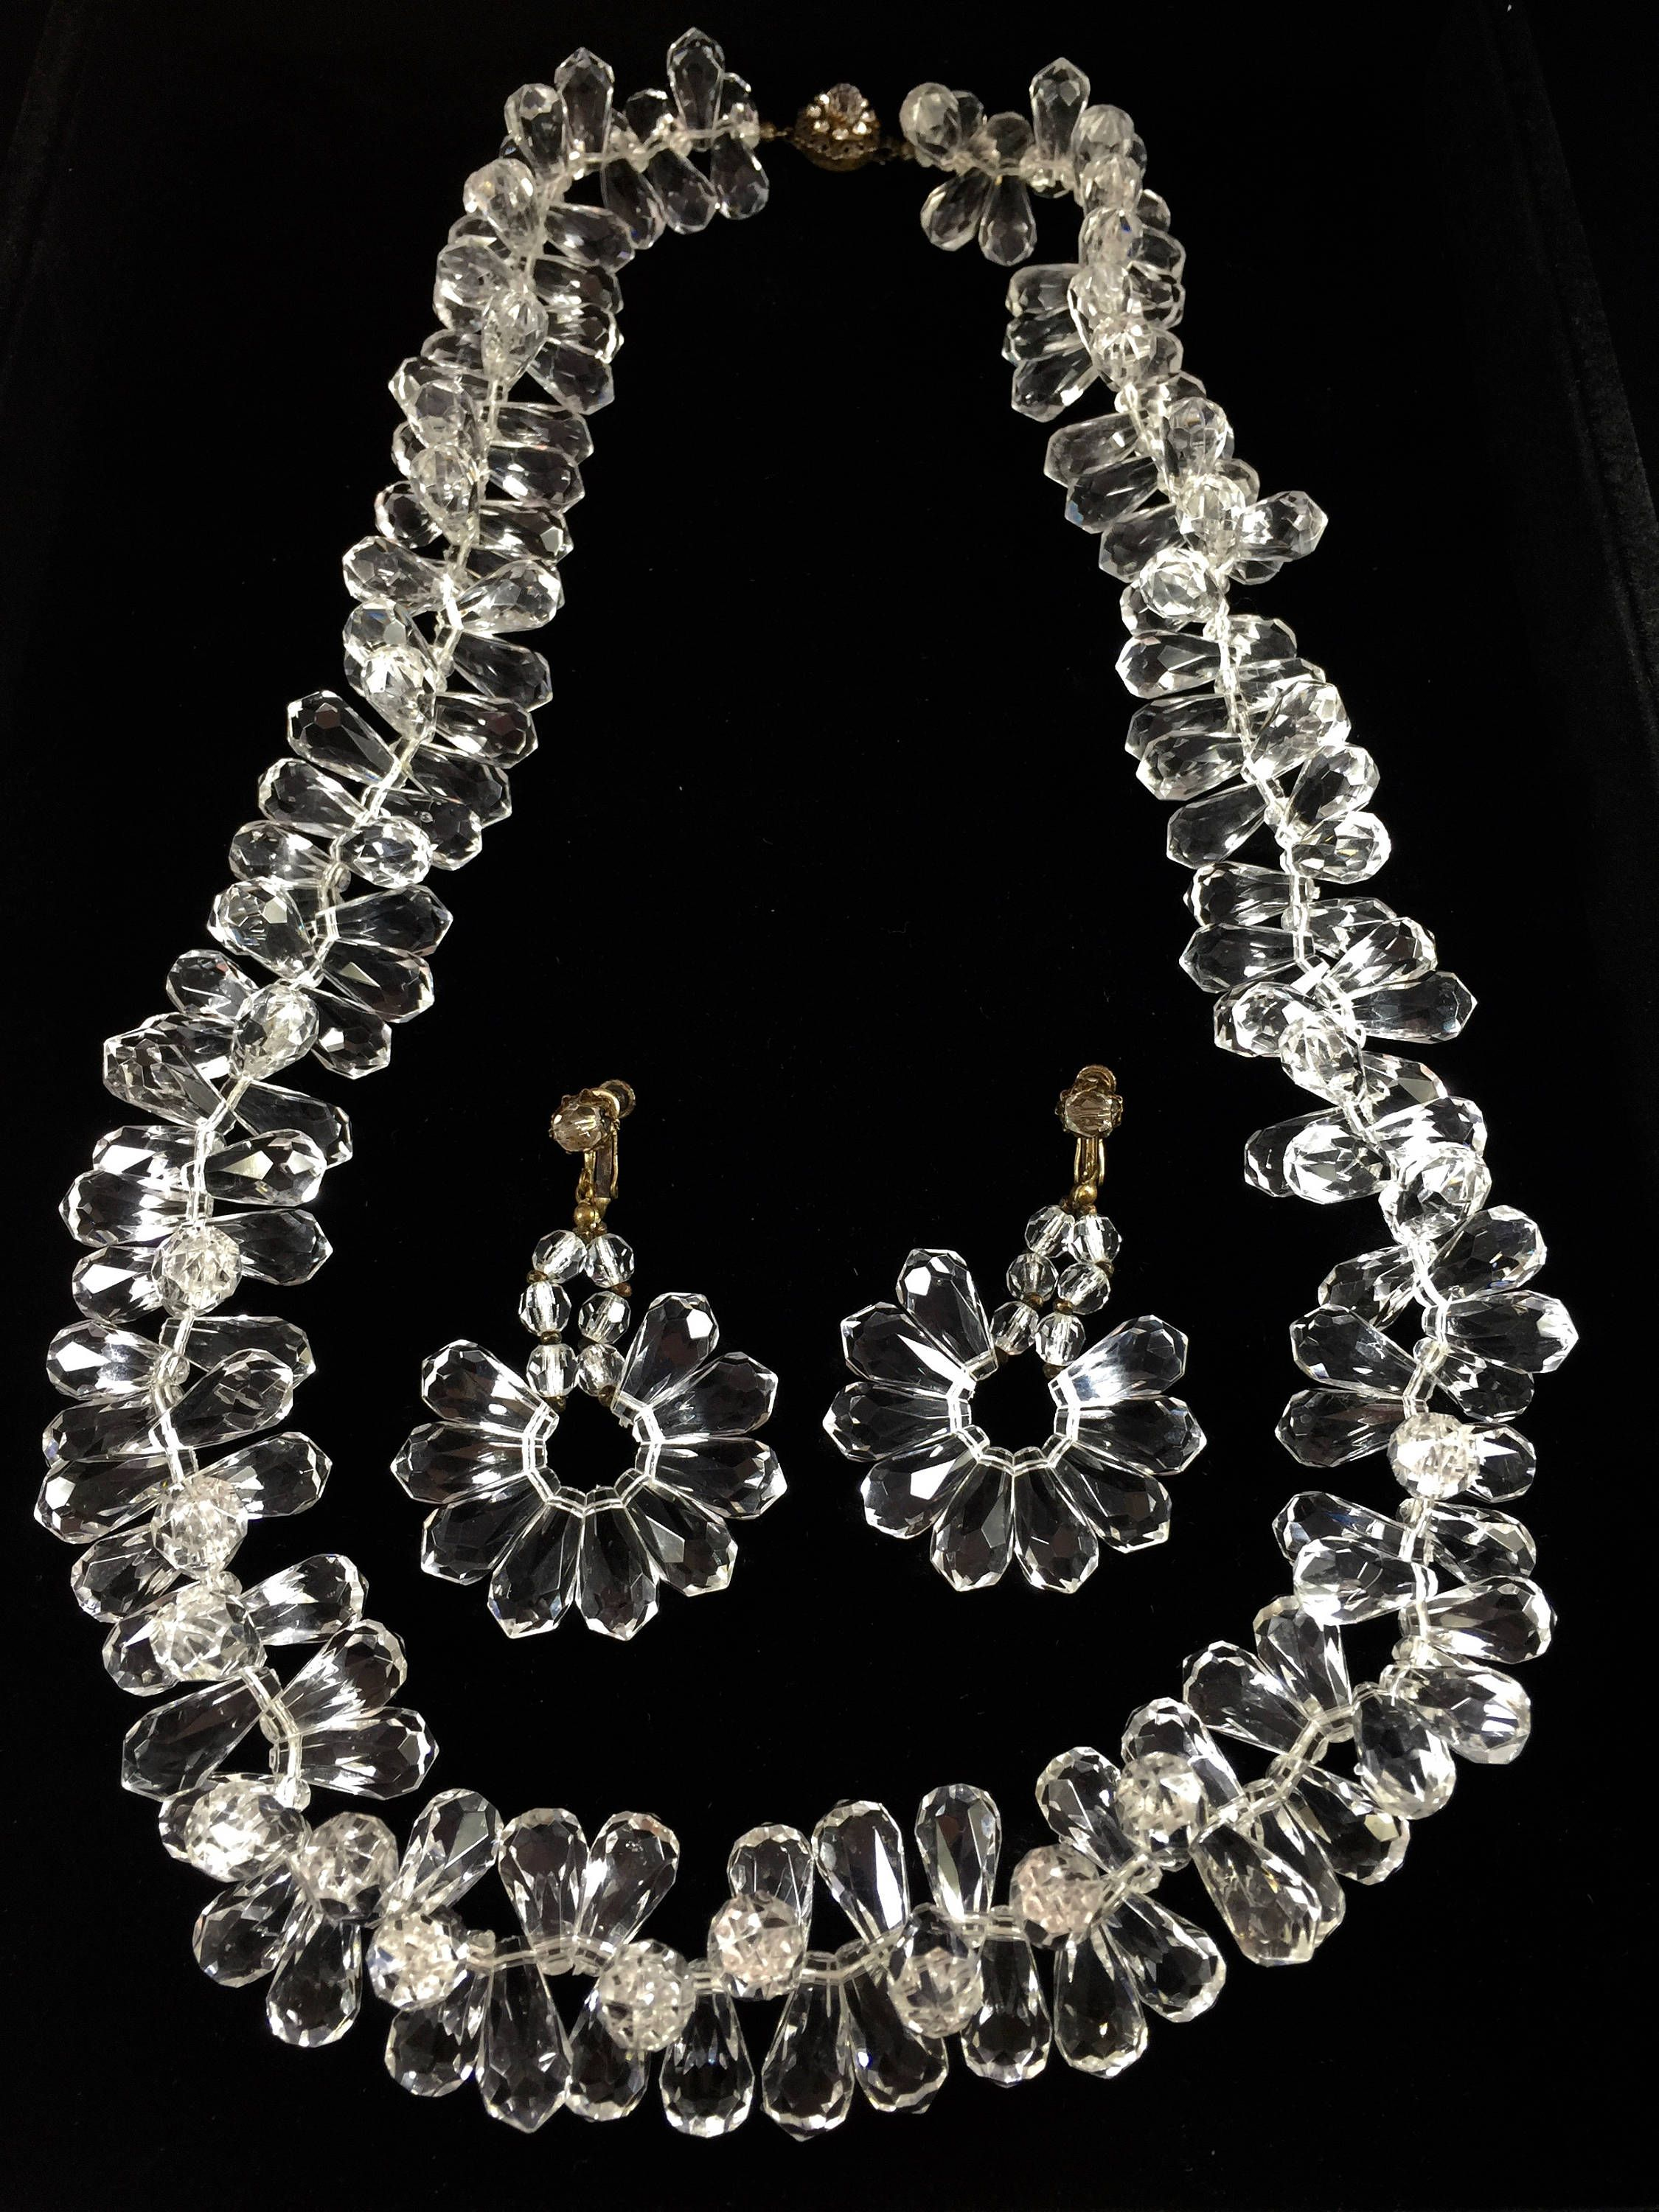 Vintage Miriam Haskell Lucite Jewelry Set Necklace And Clip Earrings By Ckestatevintage On Etsy